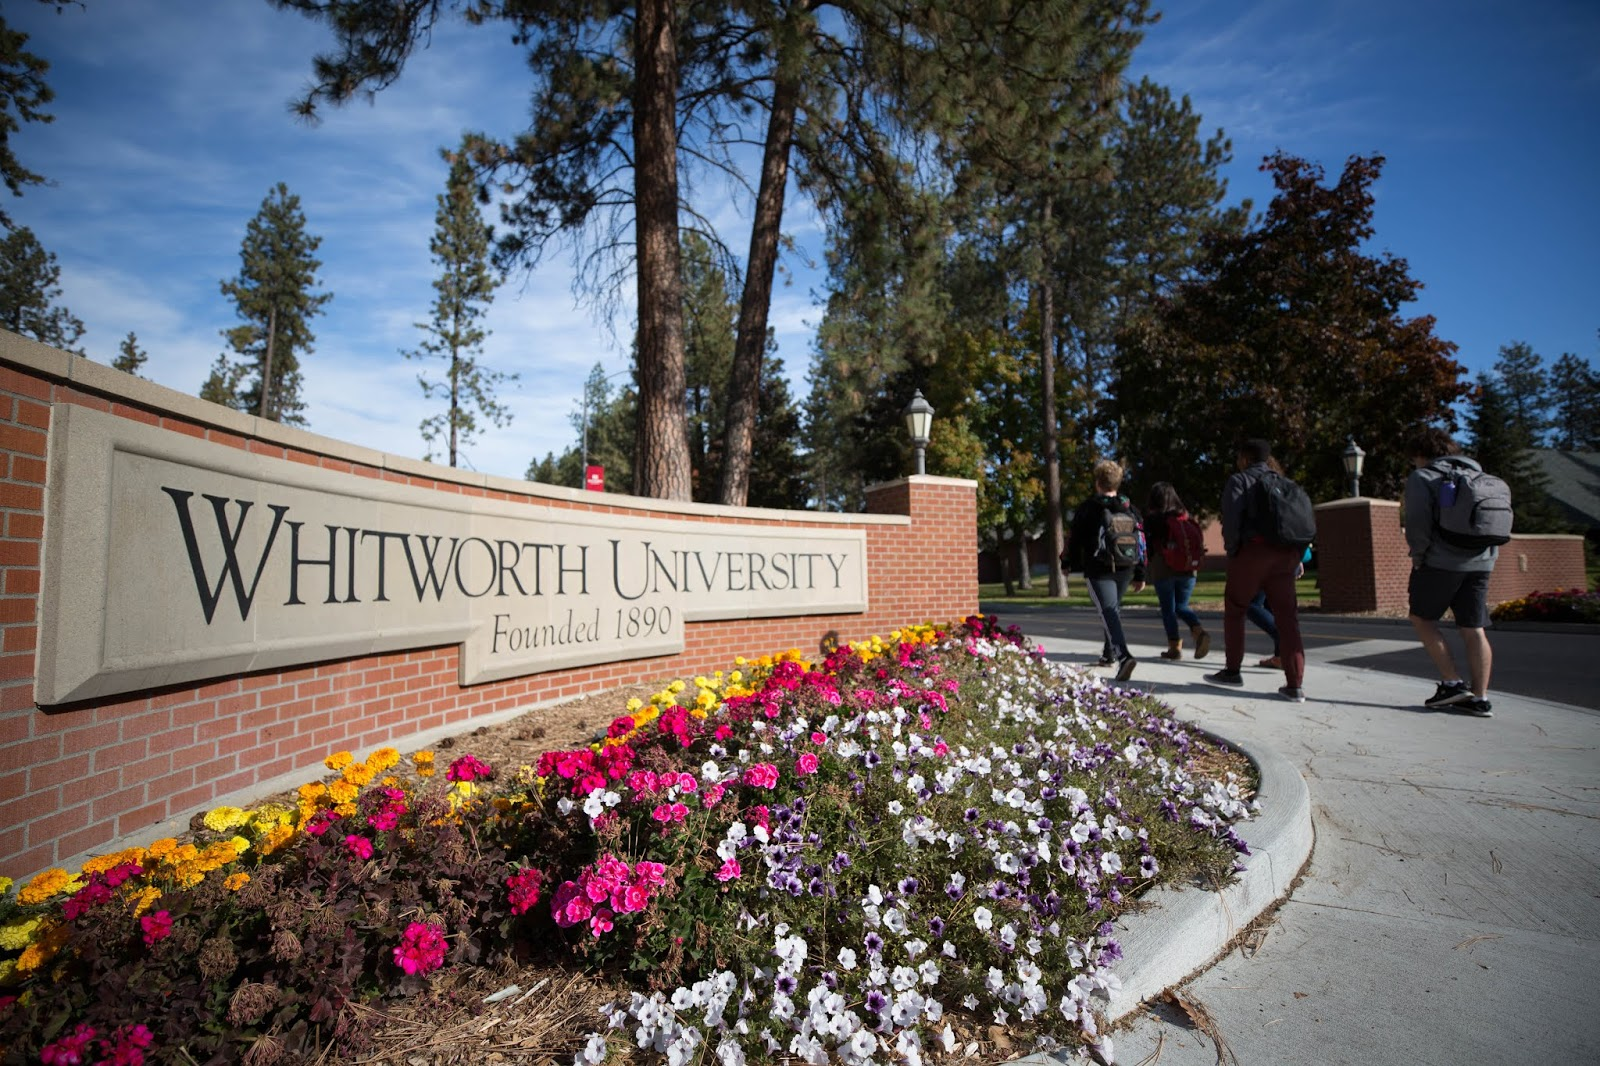 Whitworth University business degrees